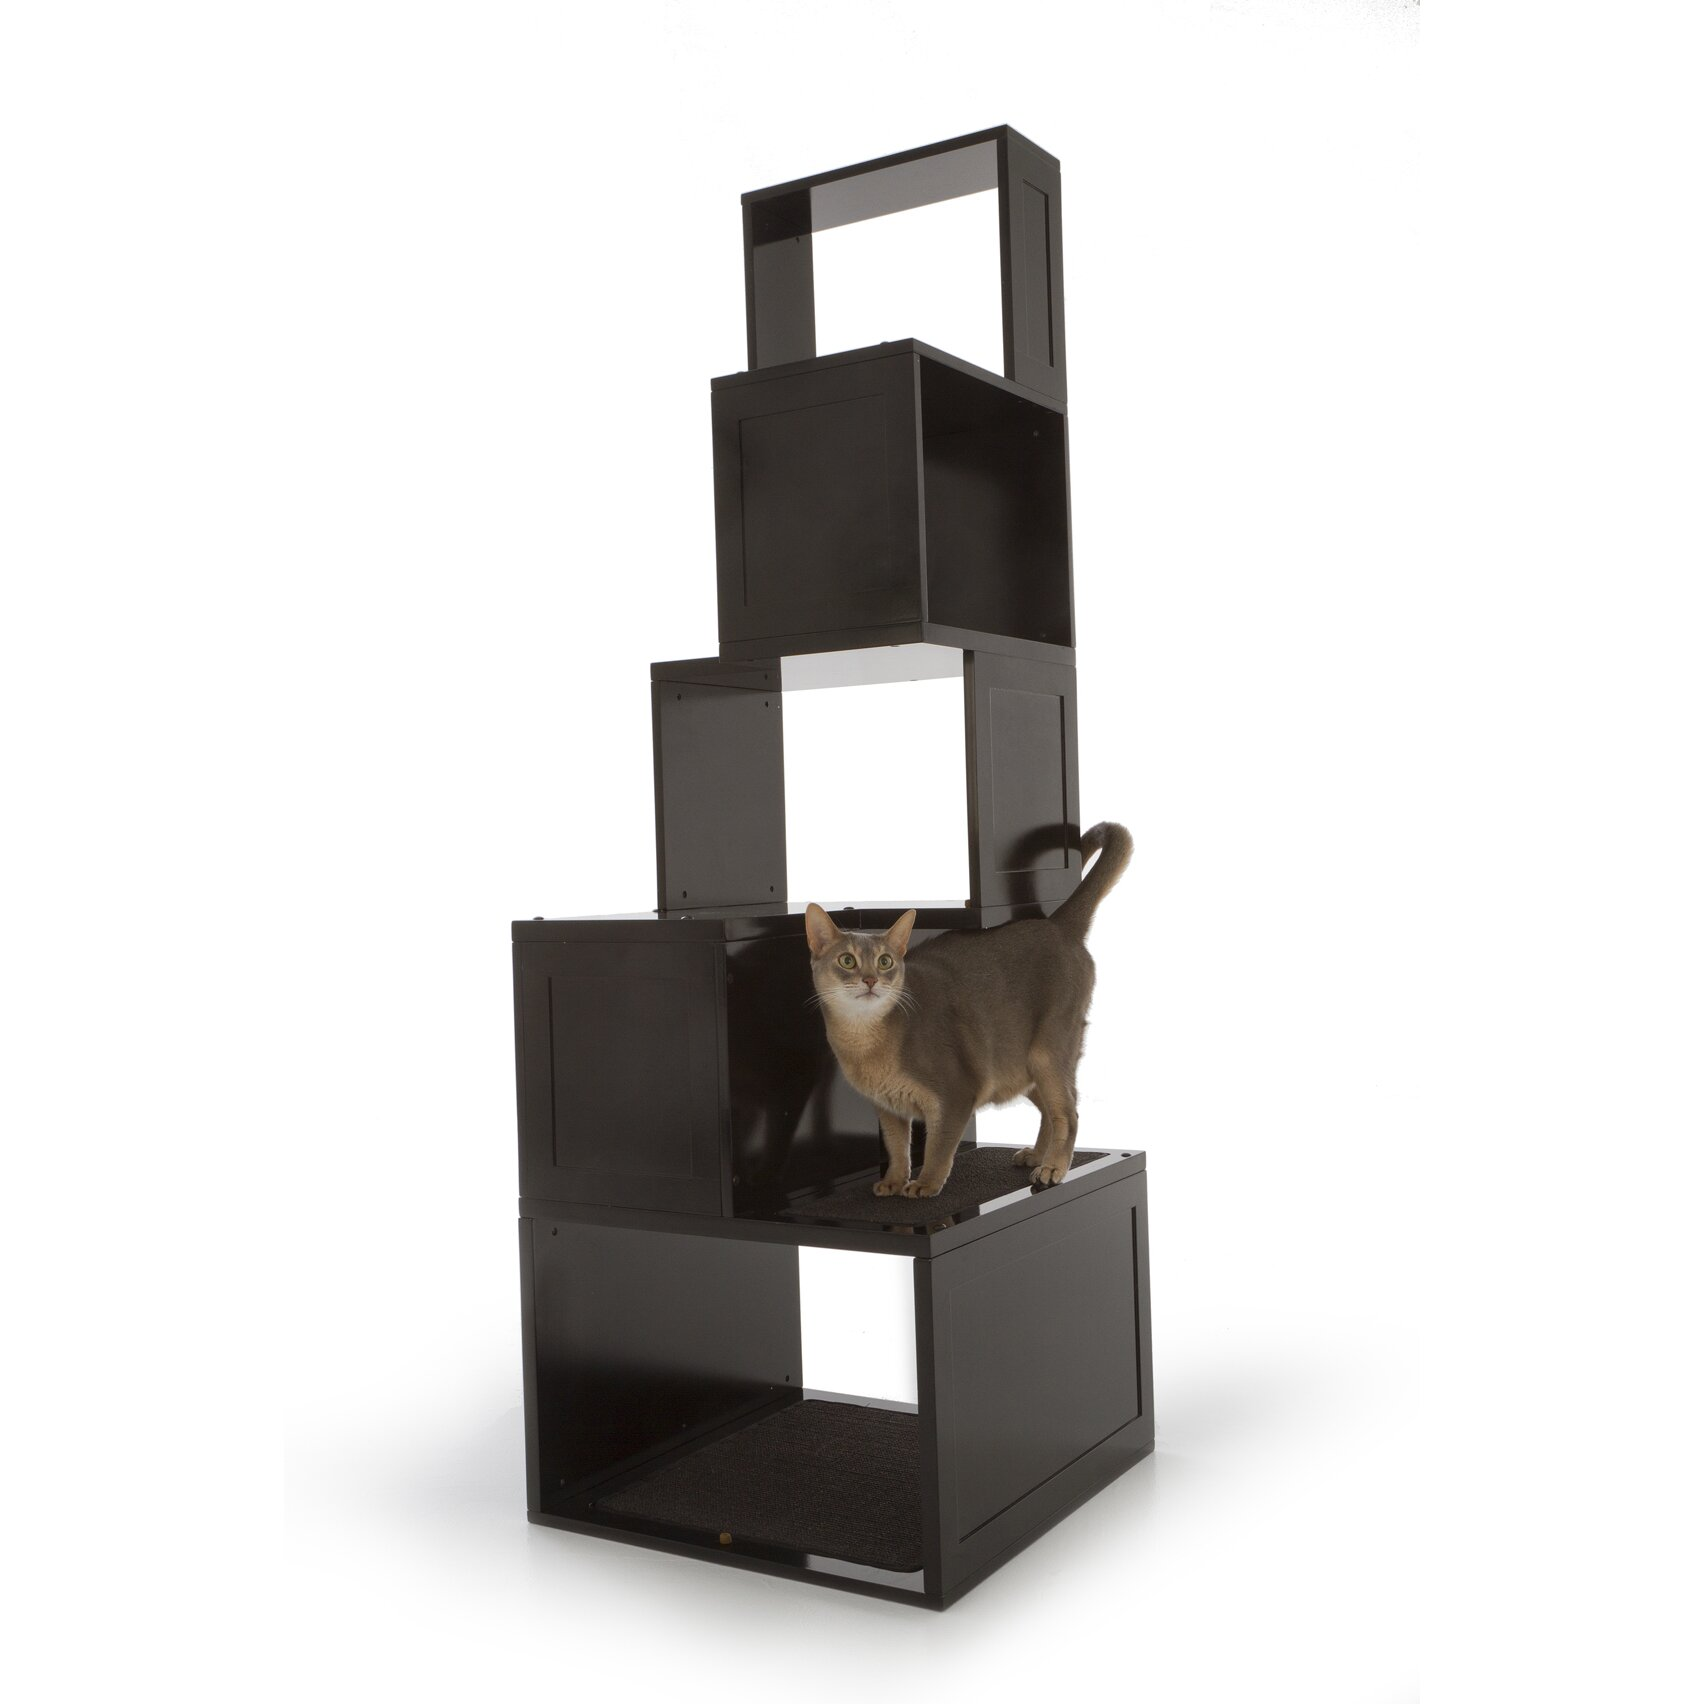 Designer Pet Products The Sebastian 65 Modern Cat Tree Interiors Inside Ideas Interiors design about Everything [magnanprojects.com]